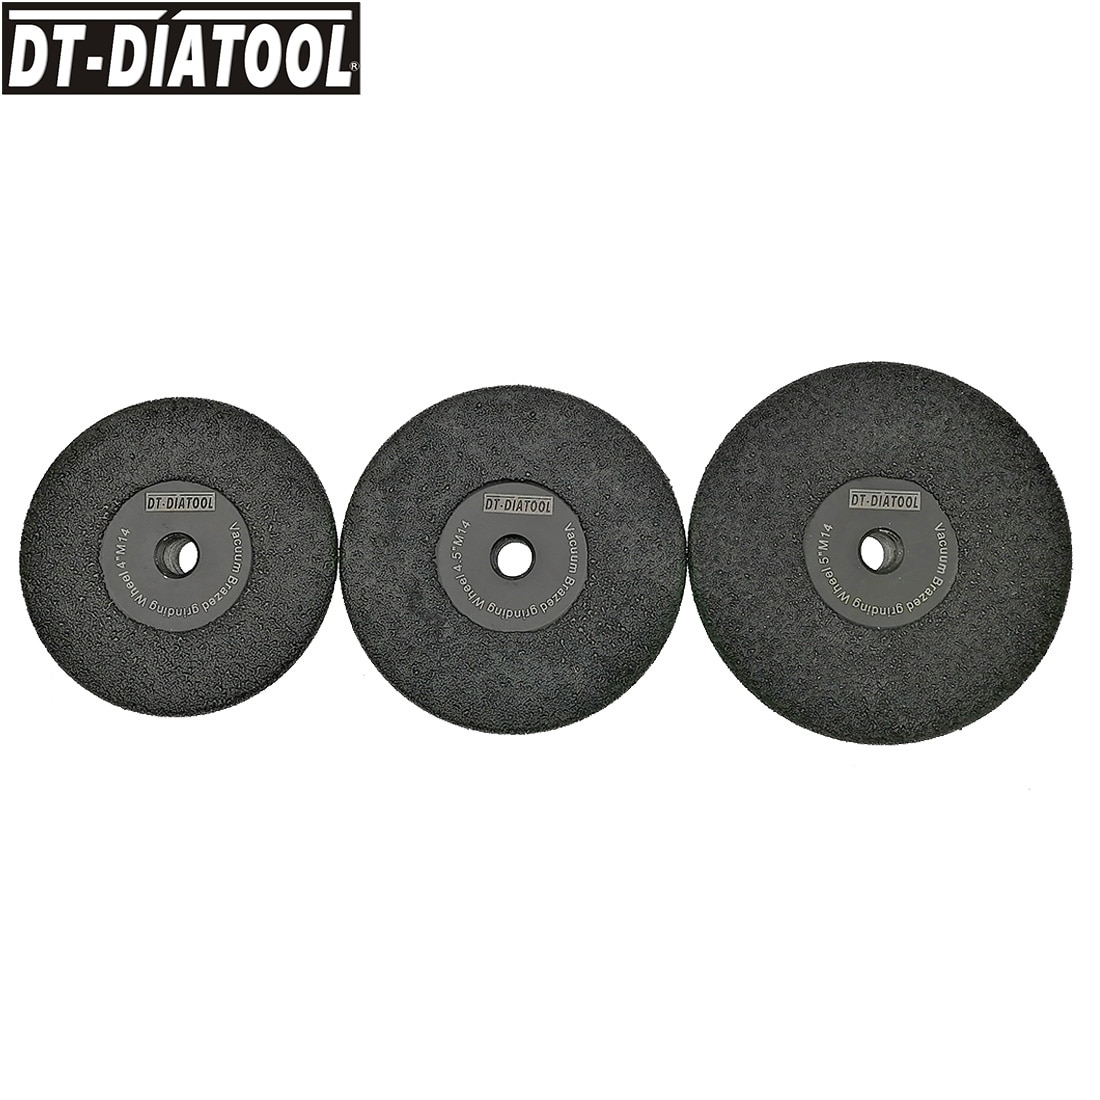 DT-DIATOOL Dia 105mm/115mm/125mm Vacuum Brazed Diamond Flat Grinding Wheel M14 Or 5/8-11 Thread Shaping Wheel Grit #30/40